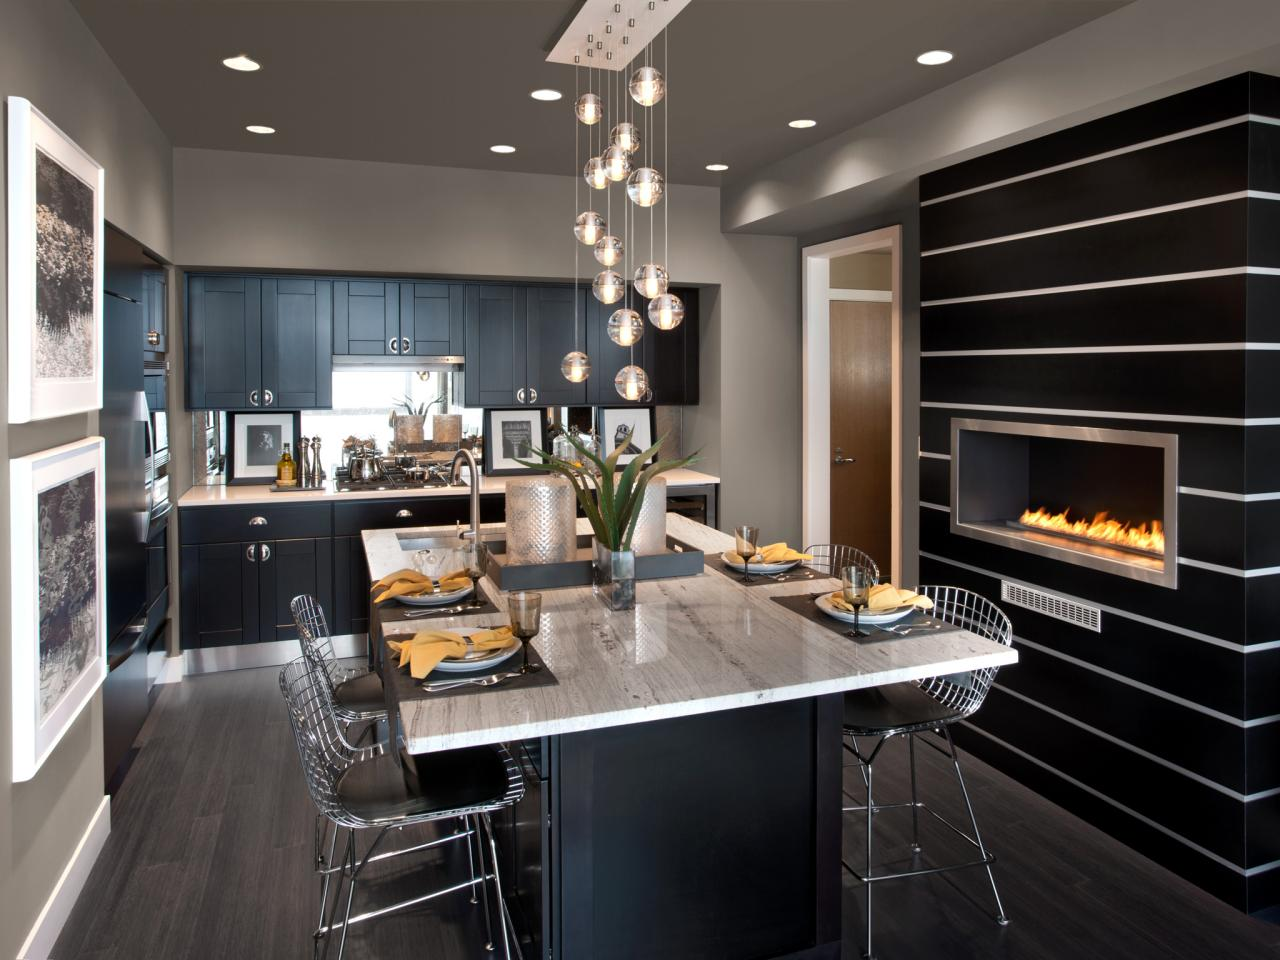 Contemporary Black Kitchen Design Ideas ~ Kitchens with modern kitchen island plans